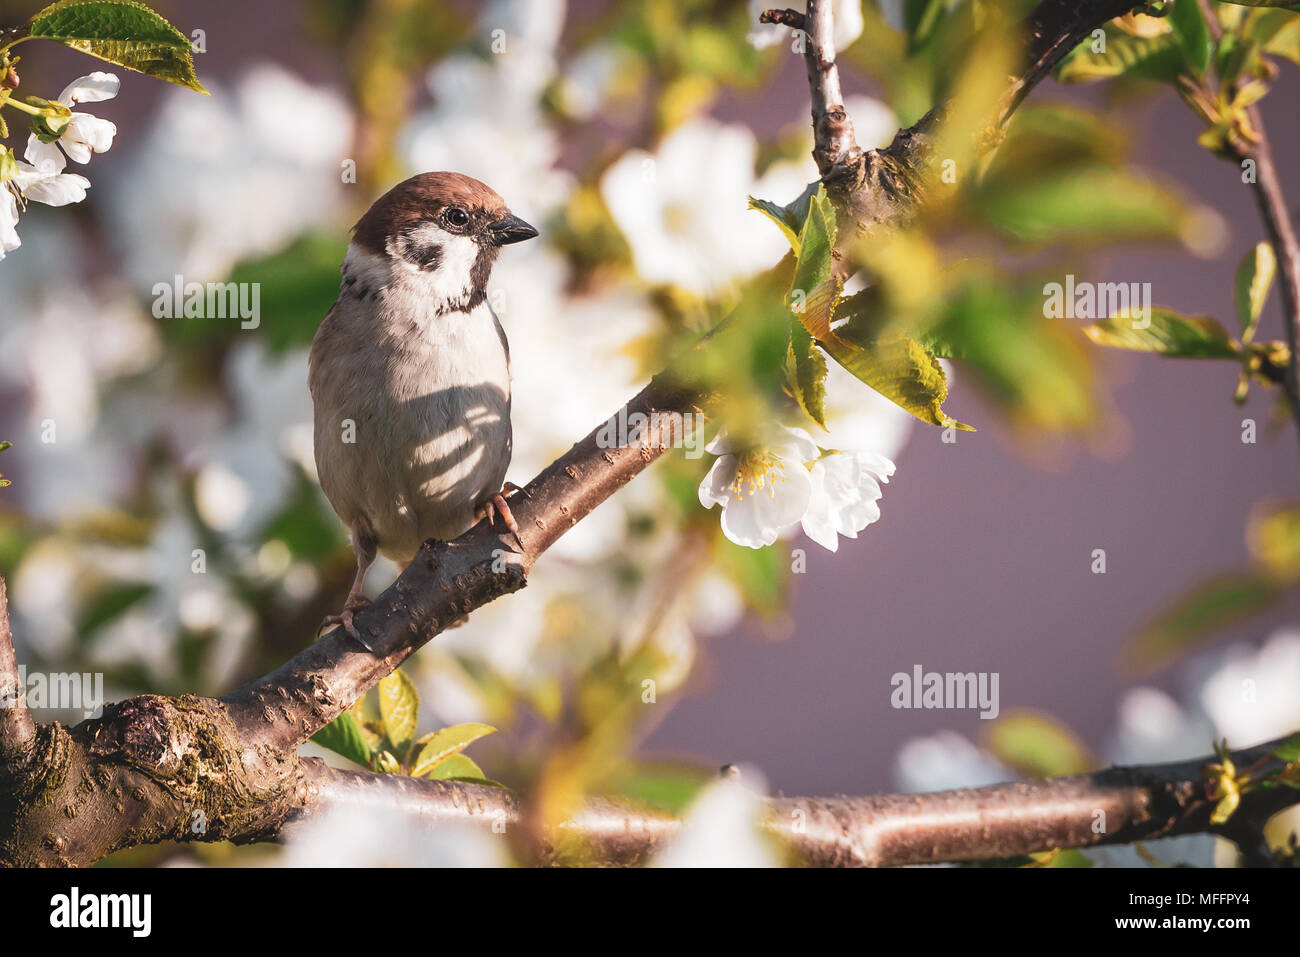 Horizontal photo of single male sparrow. Bird is perched on the twig of cherry tree. Other branches are full of fresh leaves and white blooms. Animal  - Stock Image